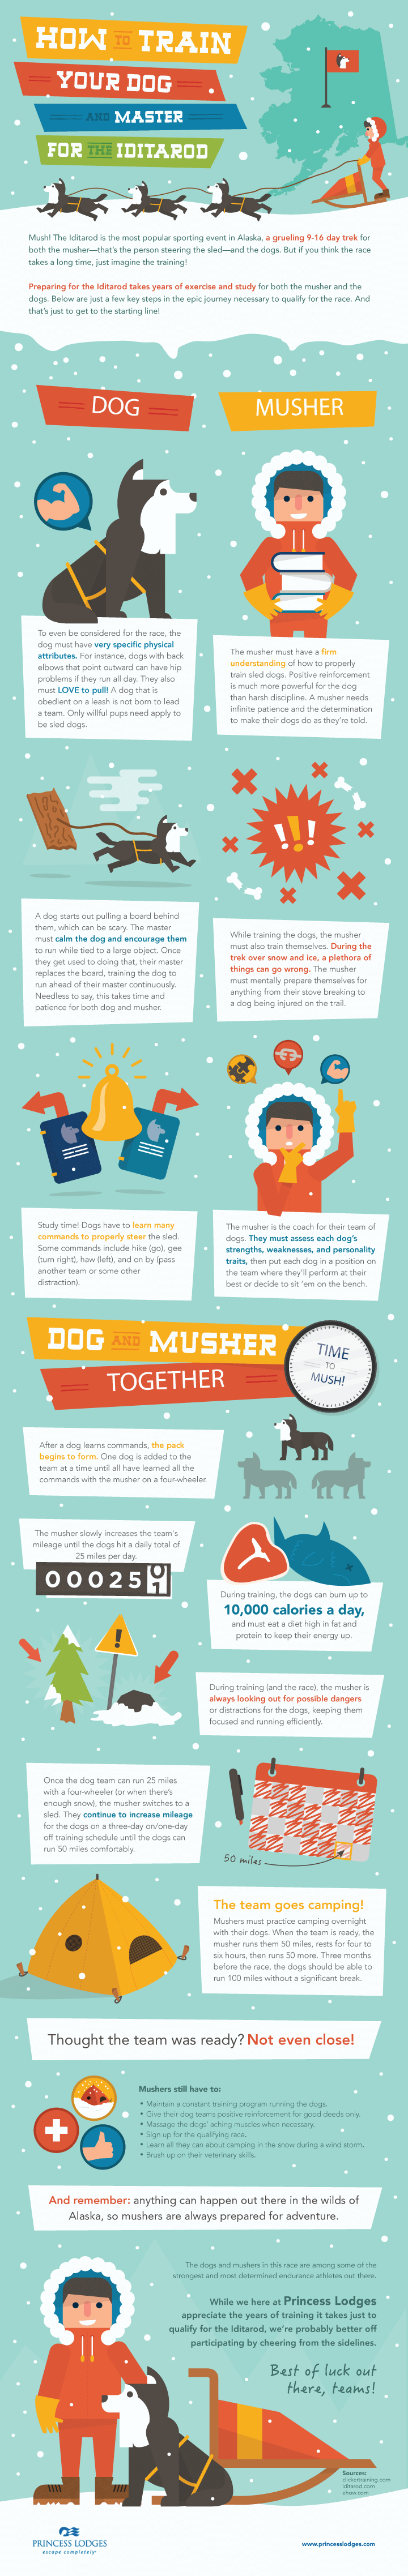 dog and puppy infograms, infographics - PRESS TO SEE THE FULL SIZE!